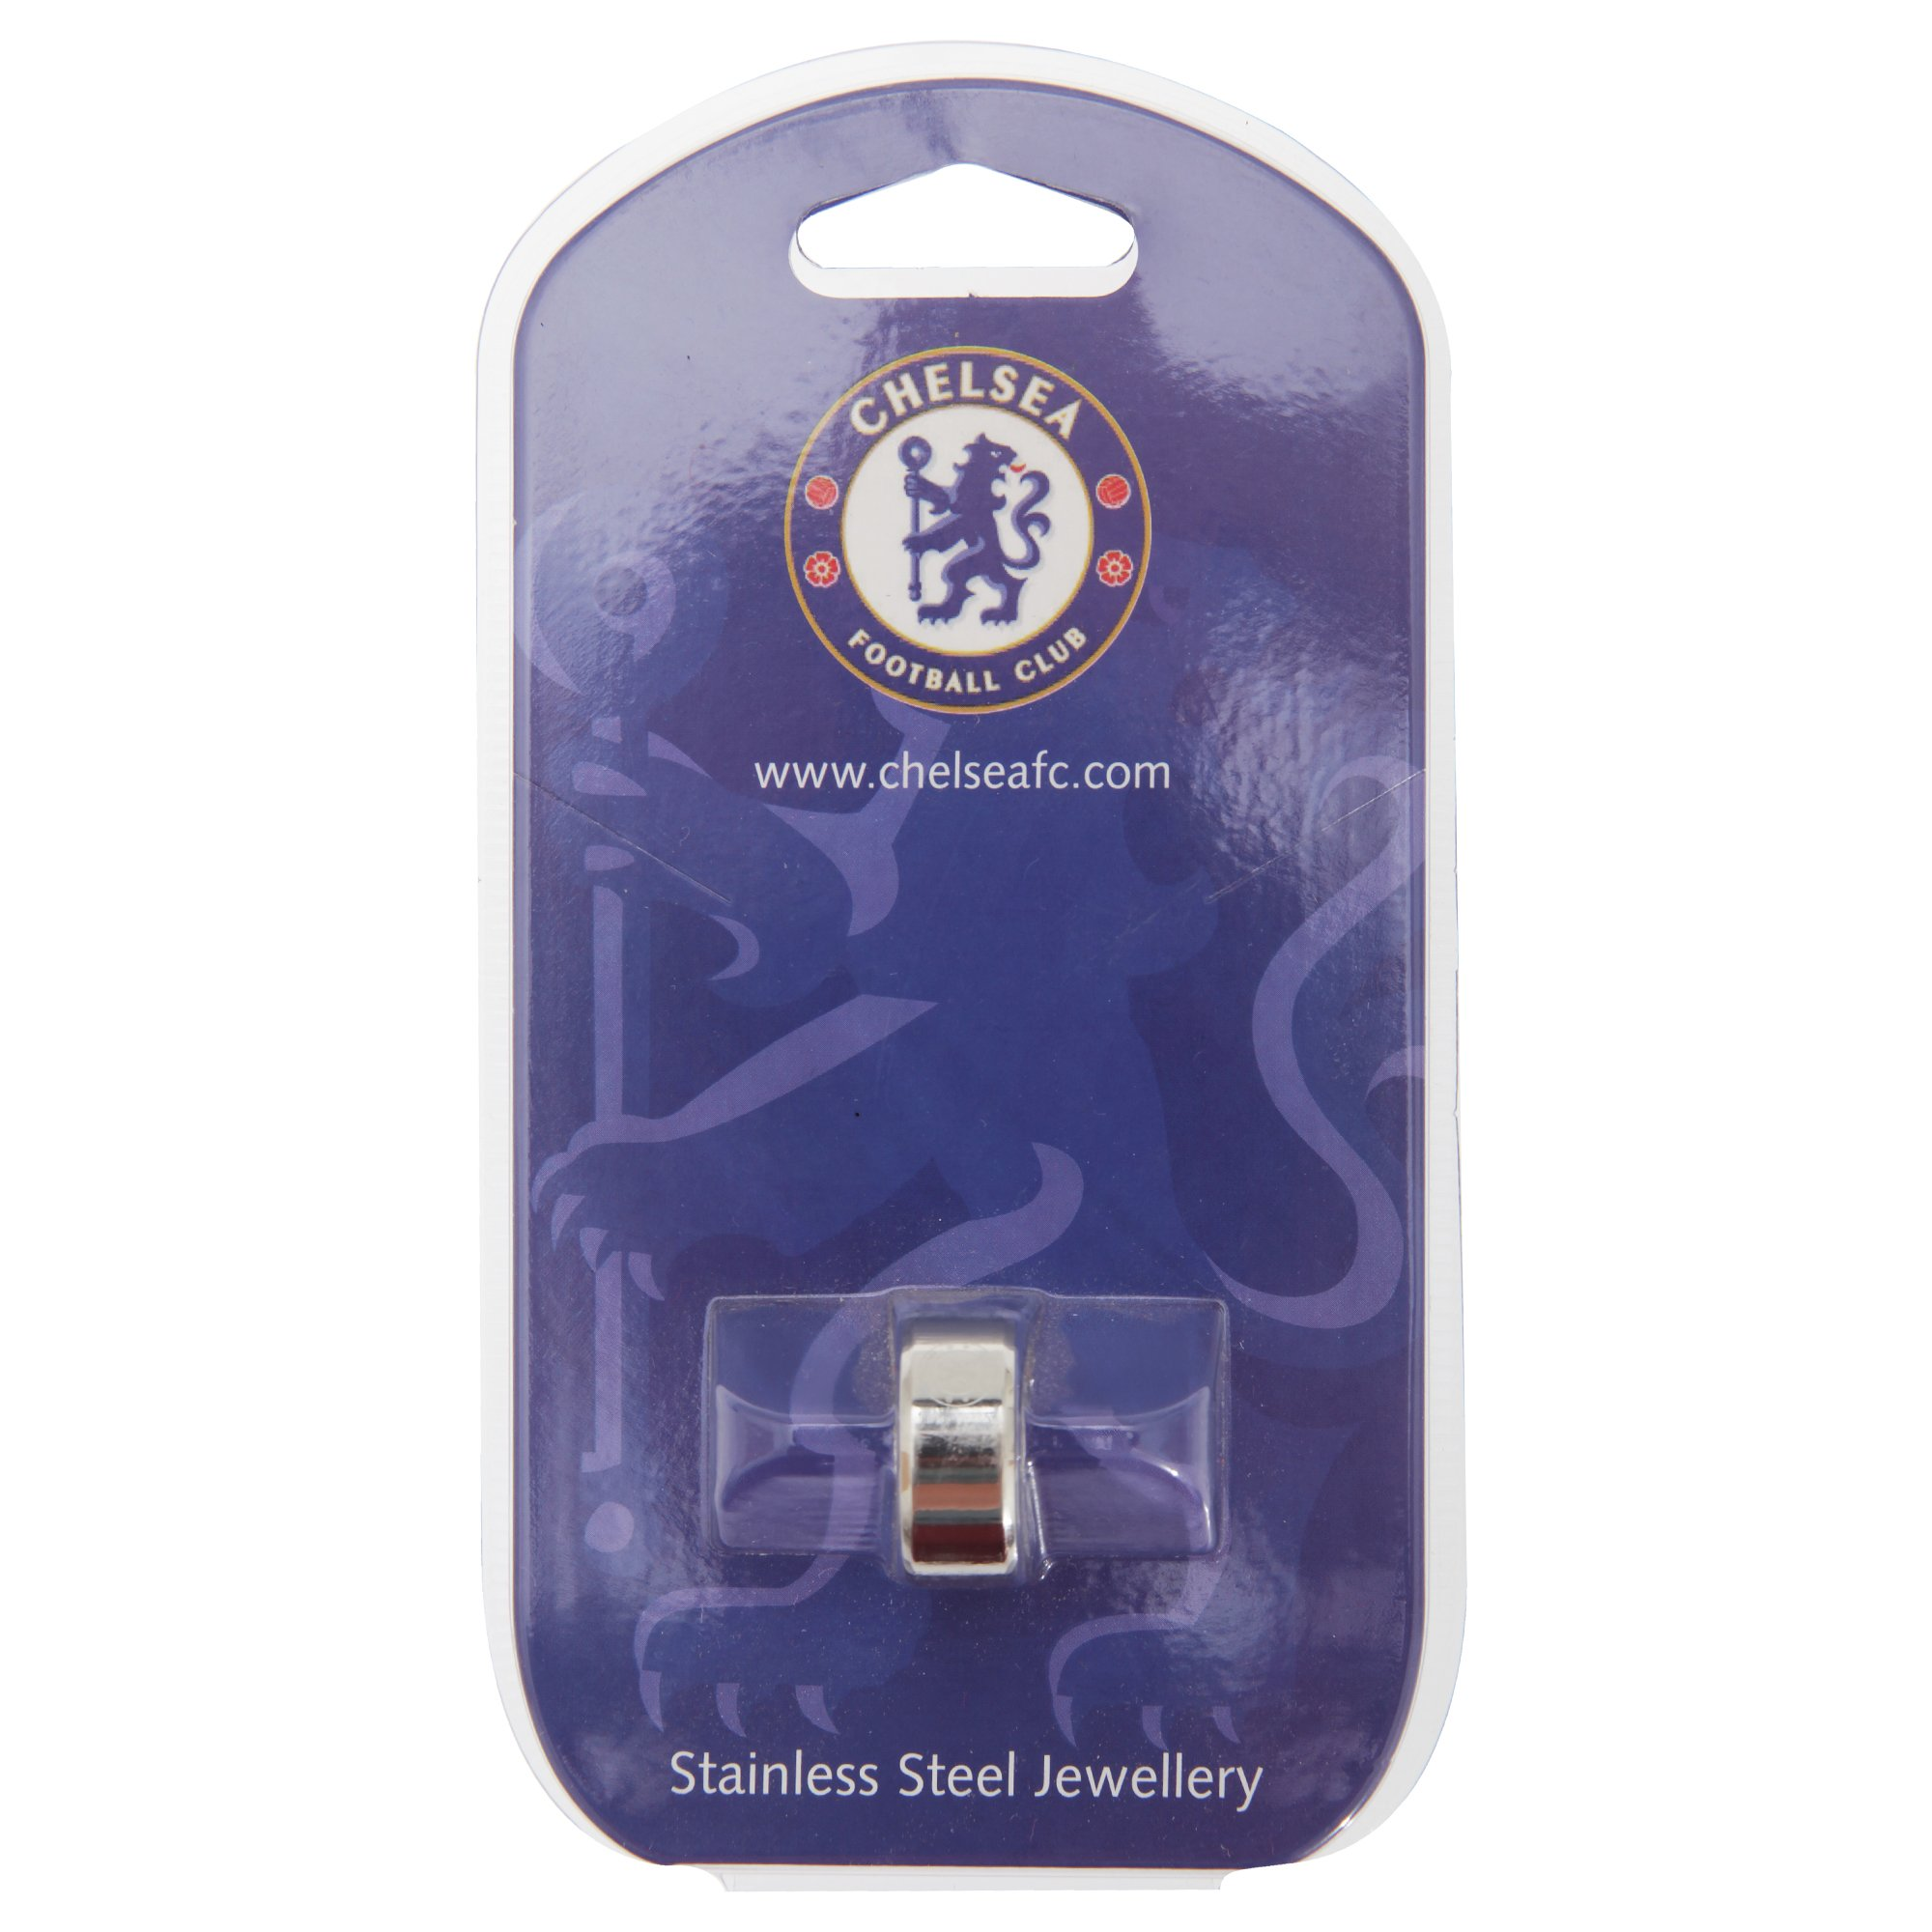 Chelsea FC Official Metal Football Crest Band Ring